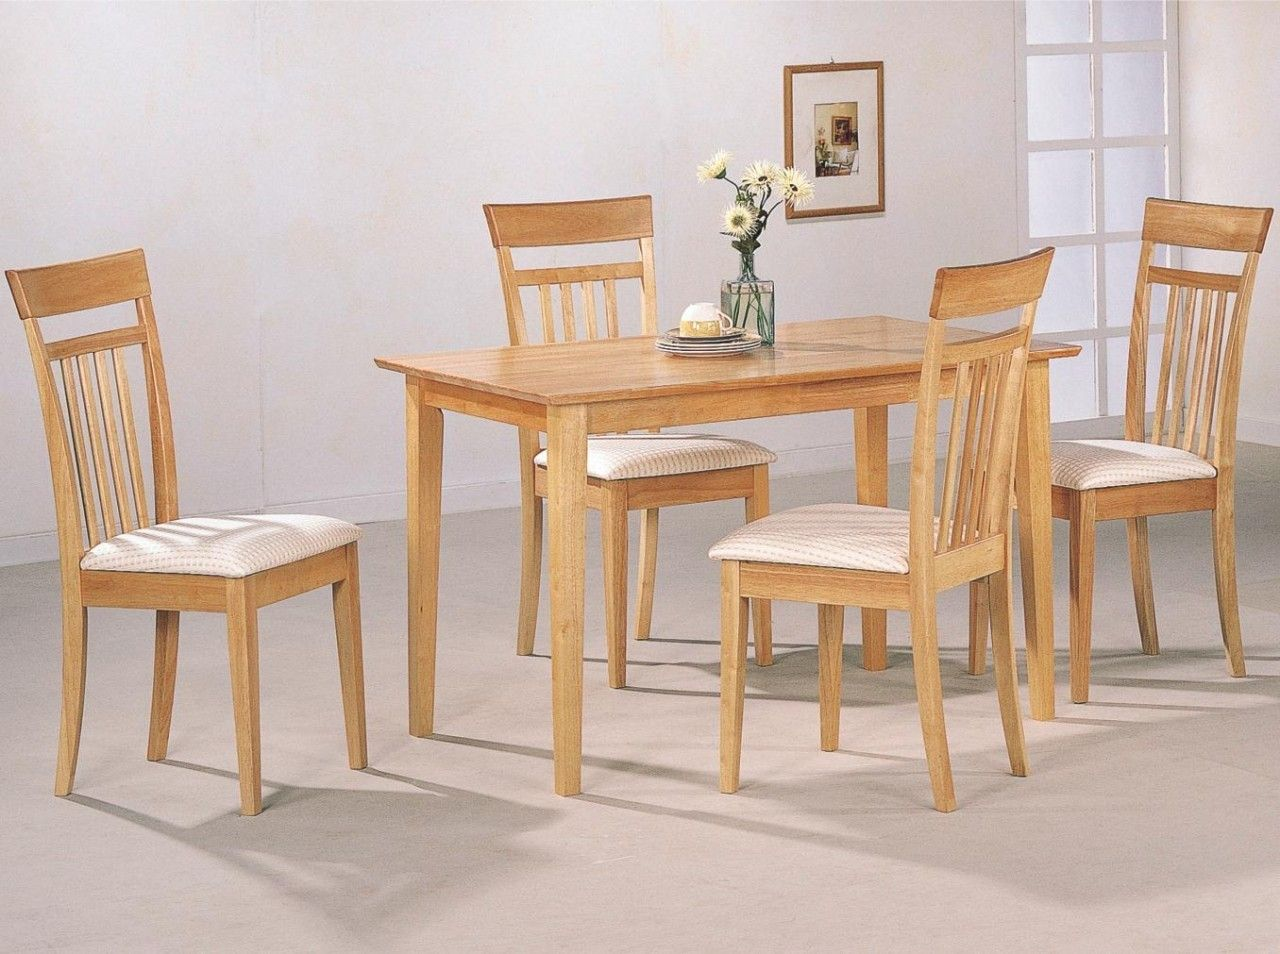 Gothic Cabinet Craft - Alpha, 5 Piece Dining Set NATURAL, $409.00 (http://www.gothiccabinetcraft.com/copy-of-alpha-5-piece-dining-set-natural/)